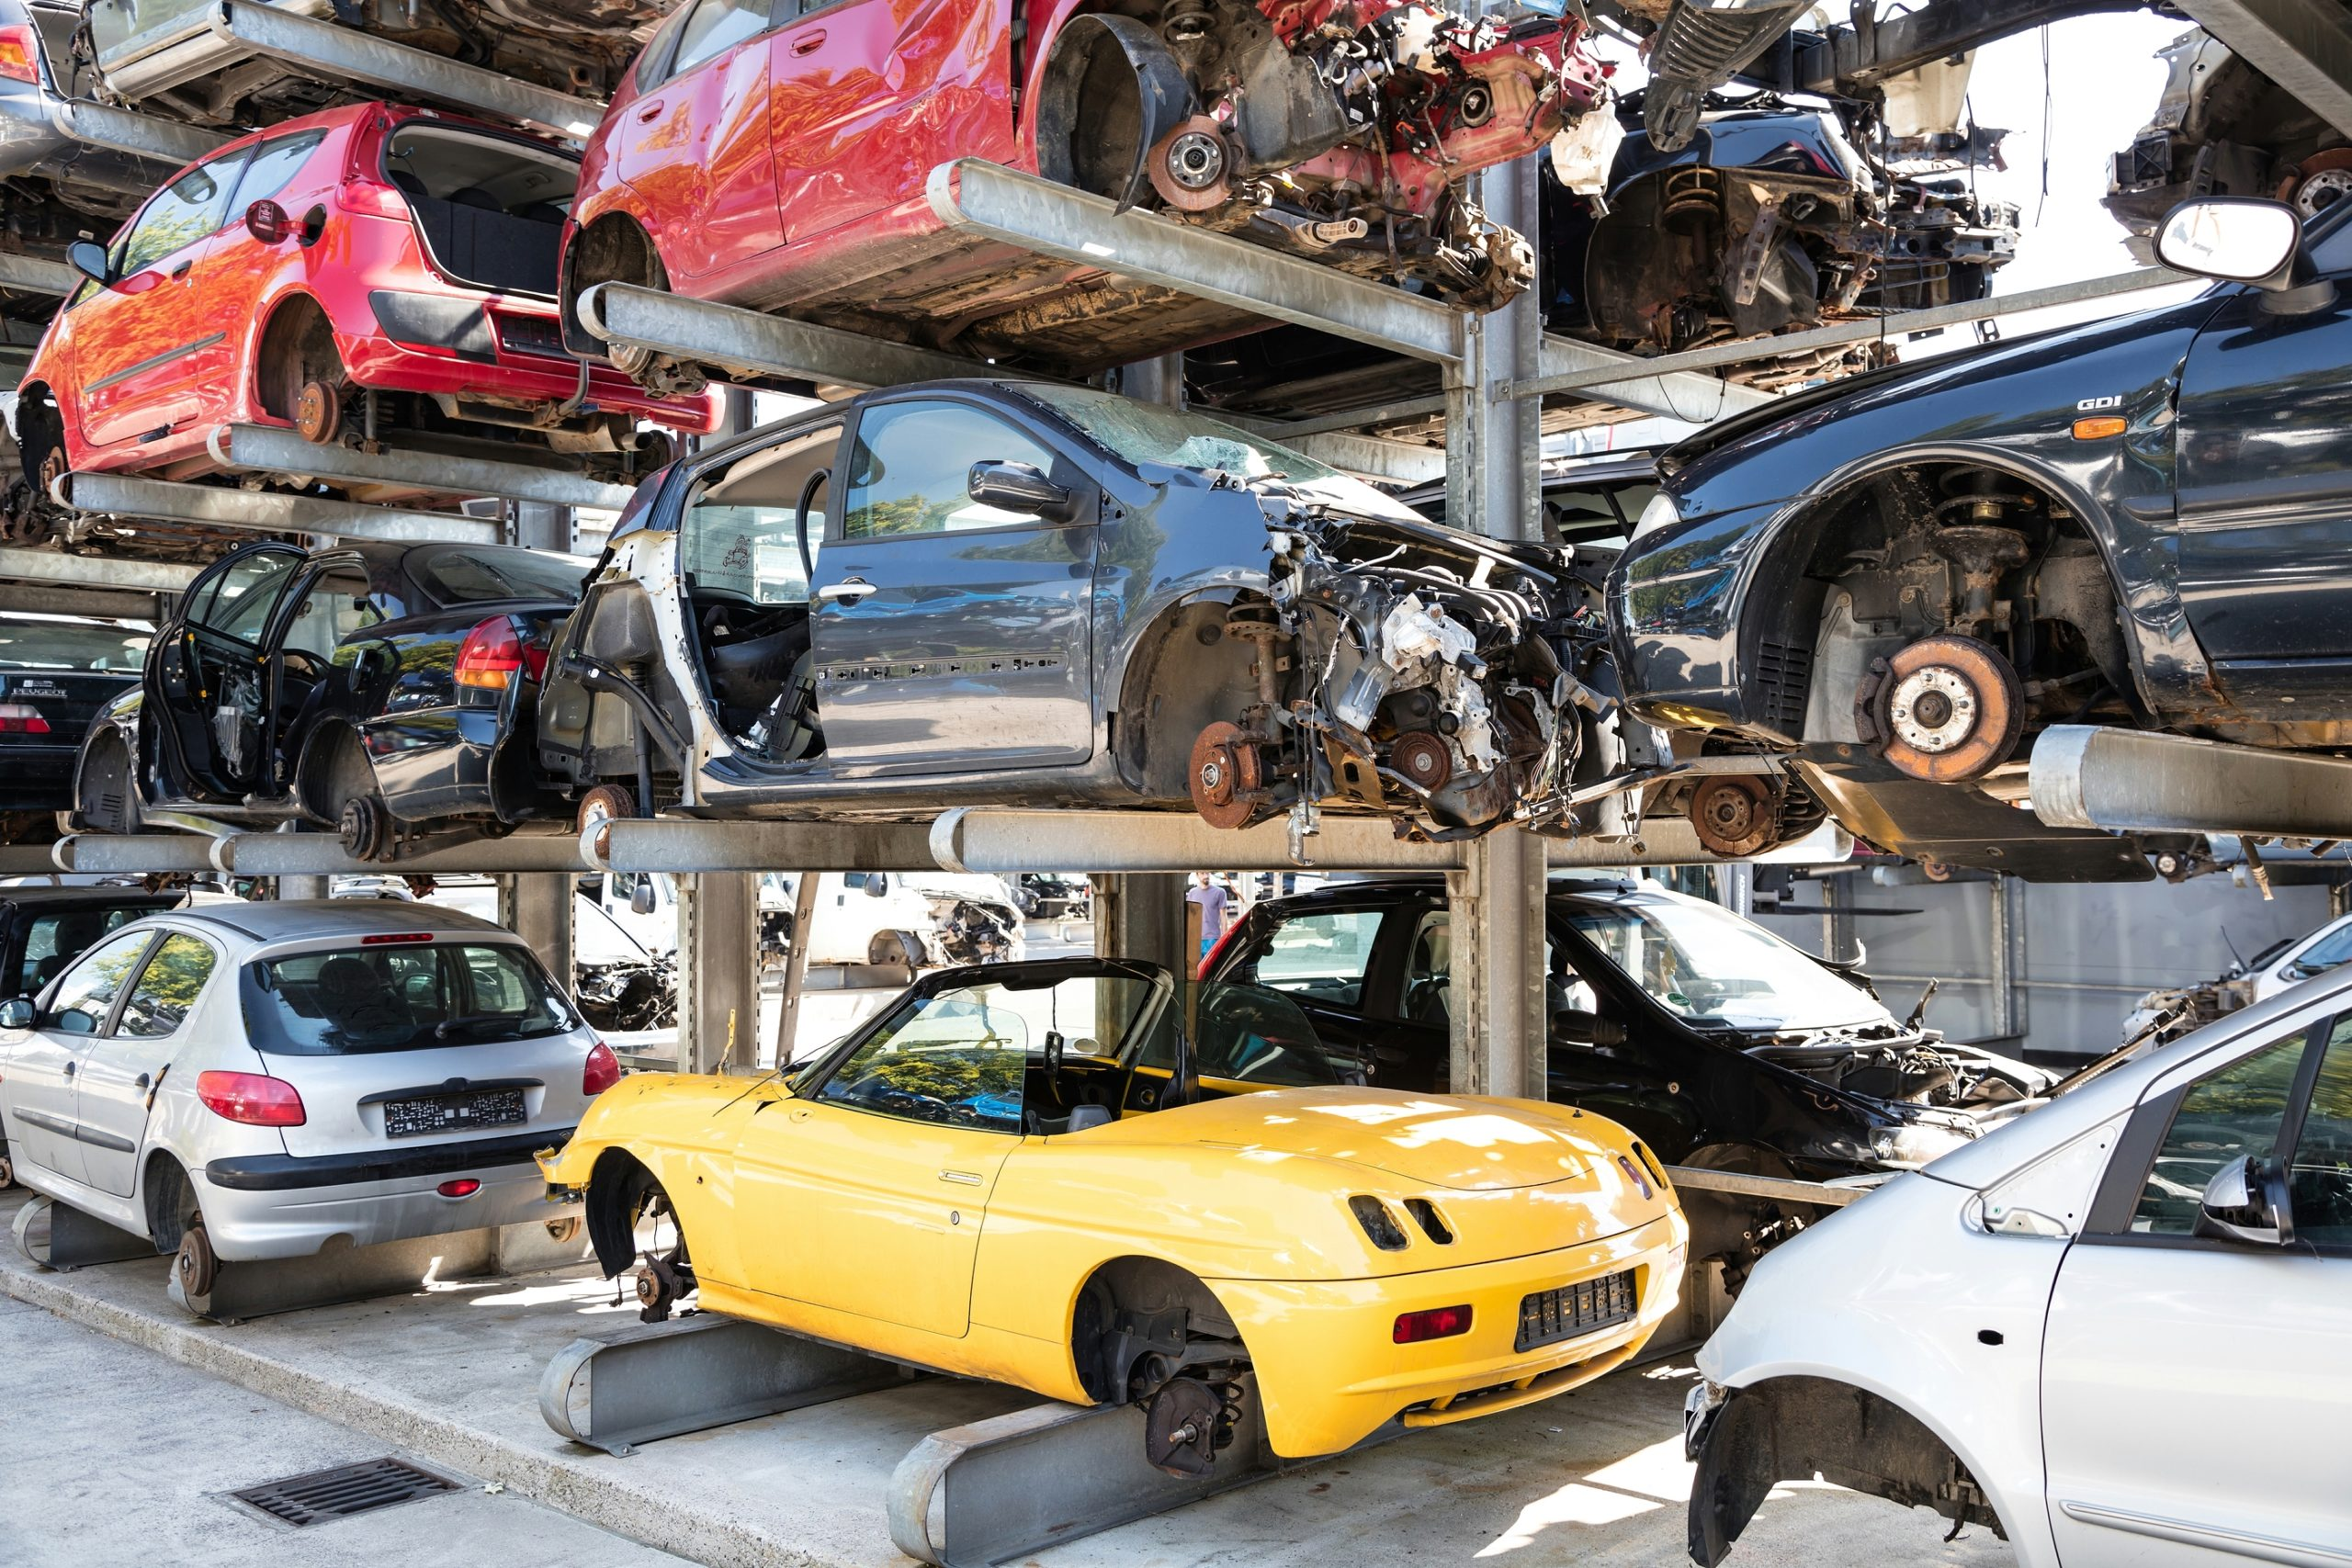 Junk Cars For Sale: Sell Your Junk Car For Quick Cash!